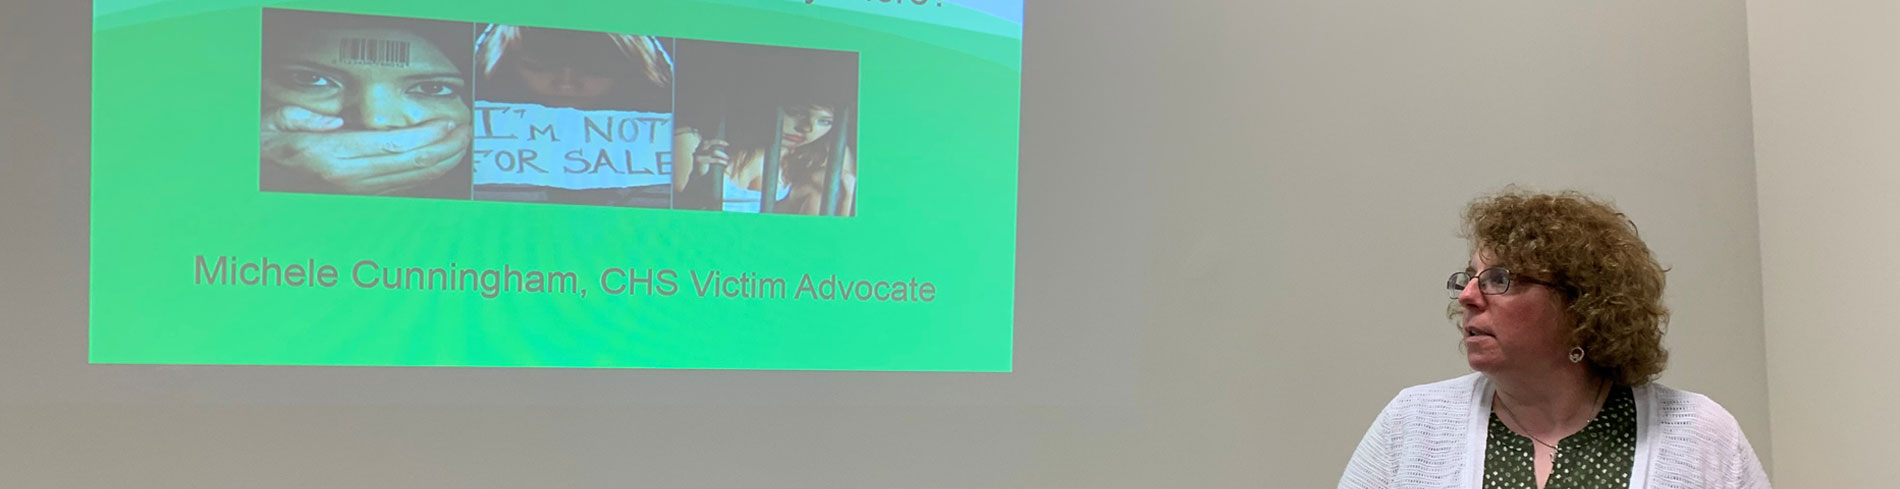 A Chicago Hearing Society employee presenting on being a victim advocate.